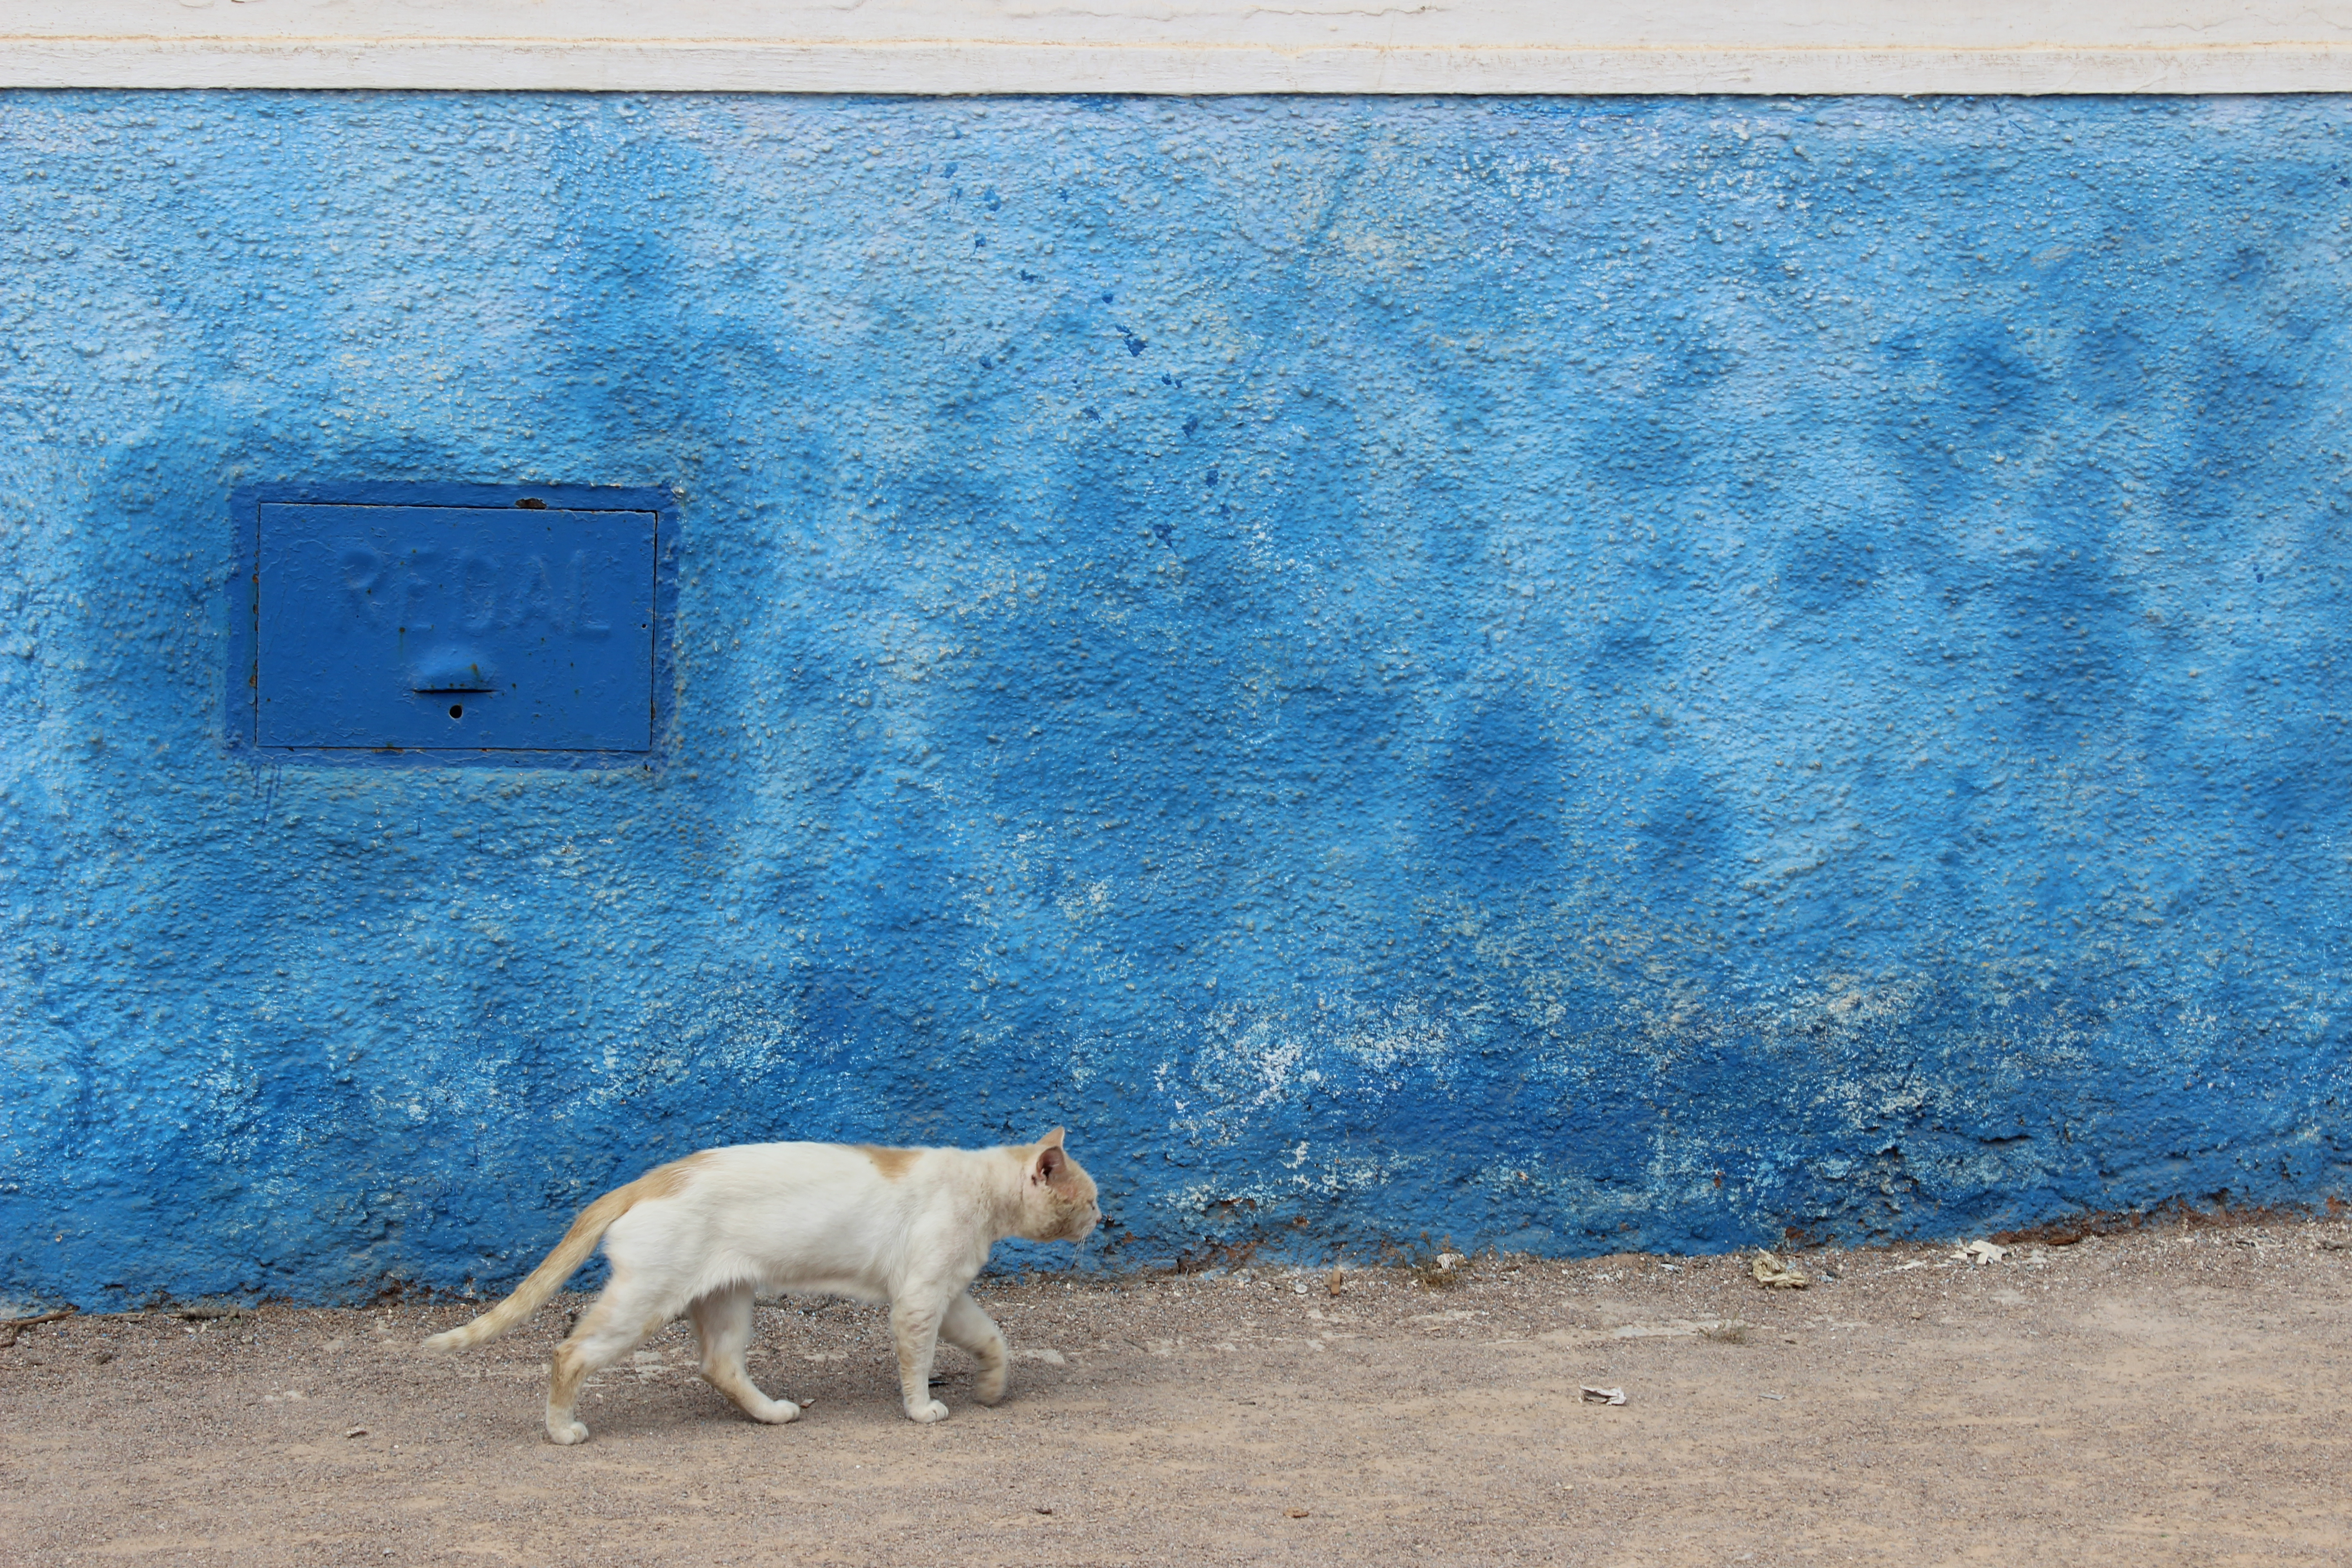 In Photos: Morocco's Cat Culture